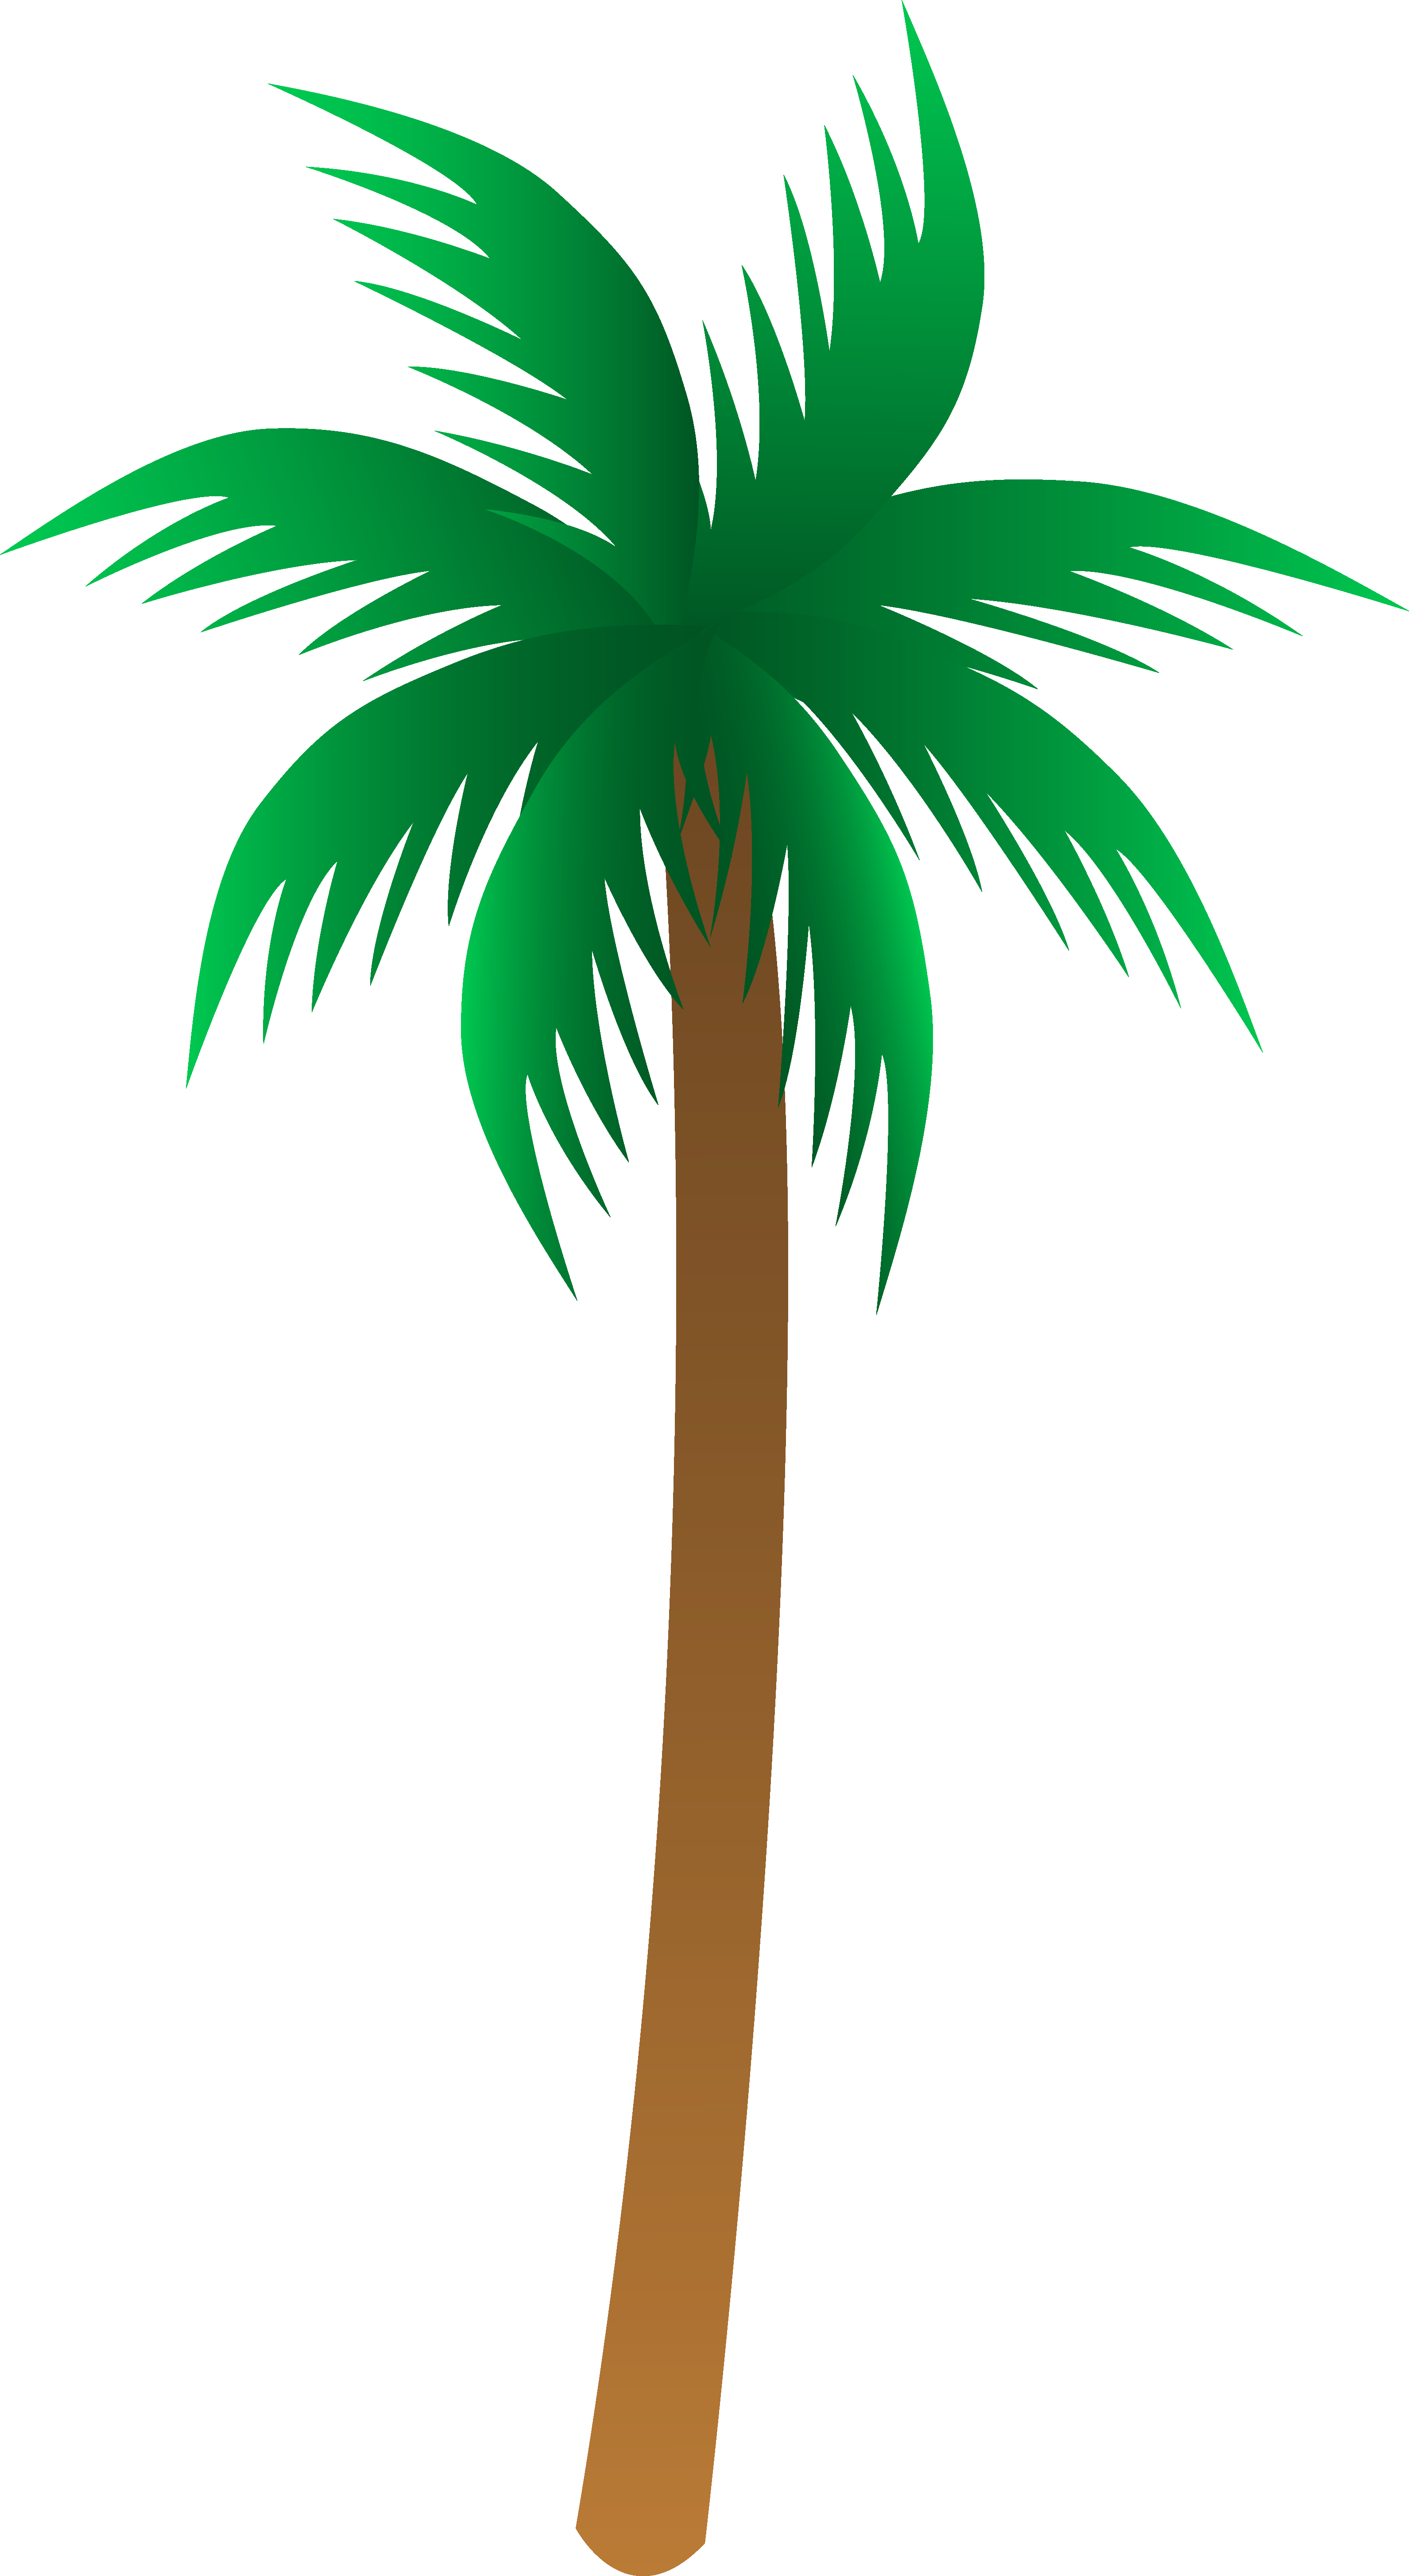 Palm Tree clipart #4, Download drawings